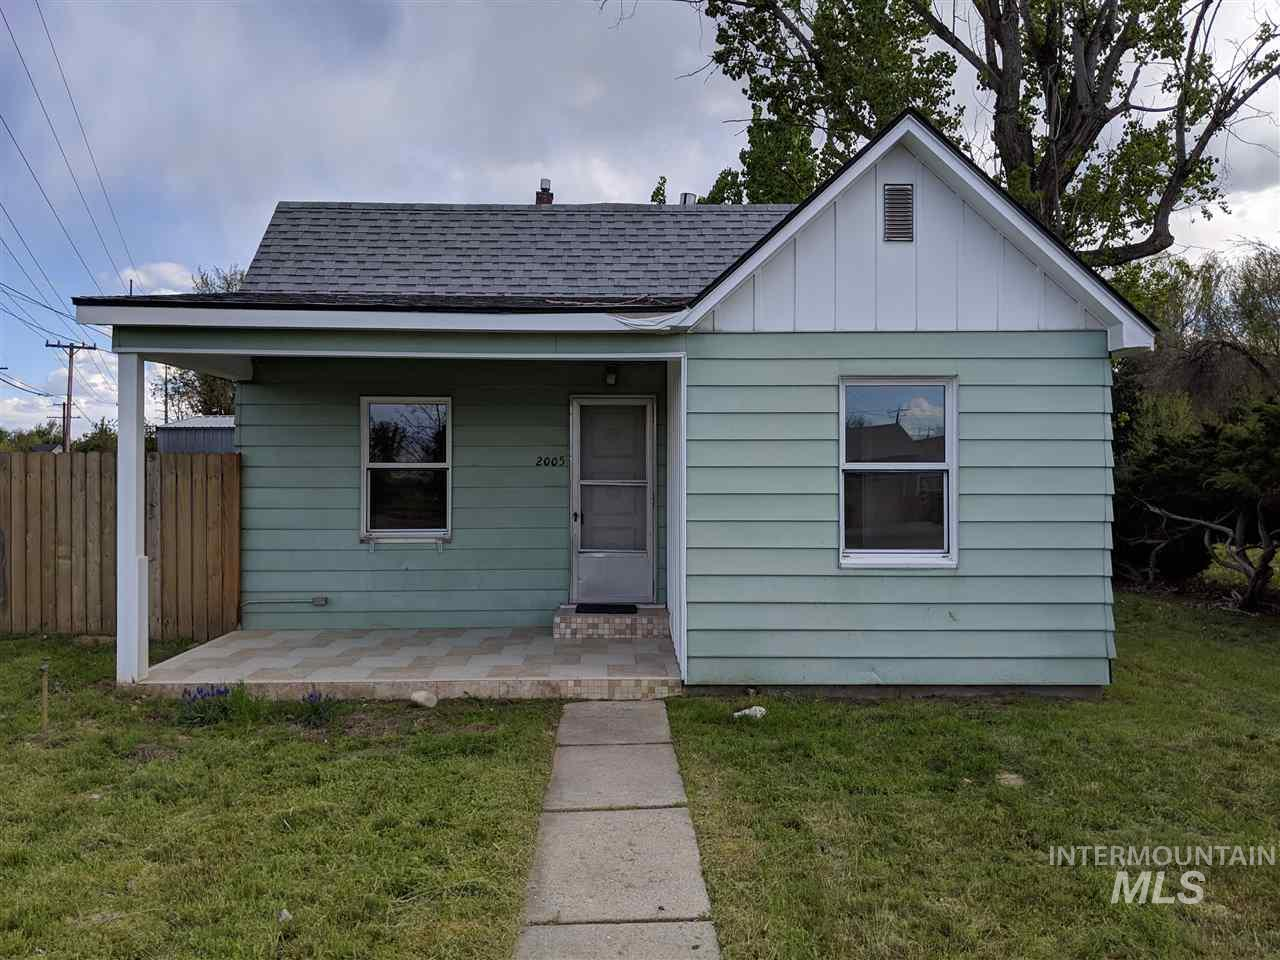 2005 Overland, Boise, Idaho 83705, 2 Bedrooms, 1 Bathroom, Rental For Rent, Price $1,200, 98721011